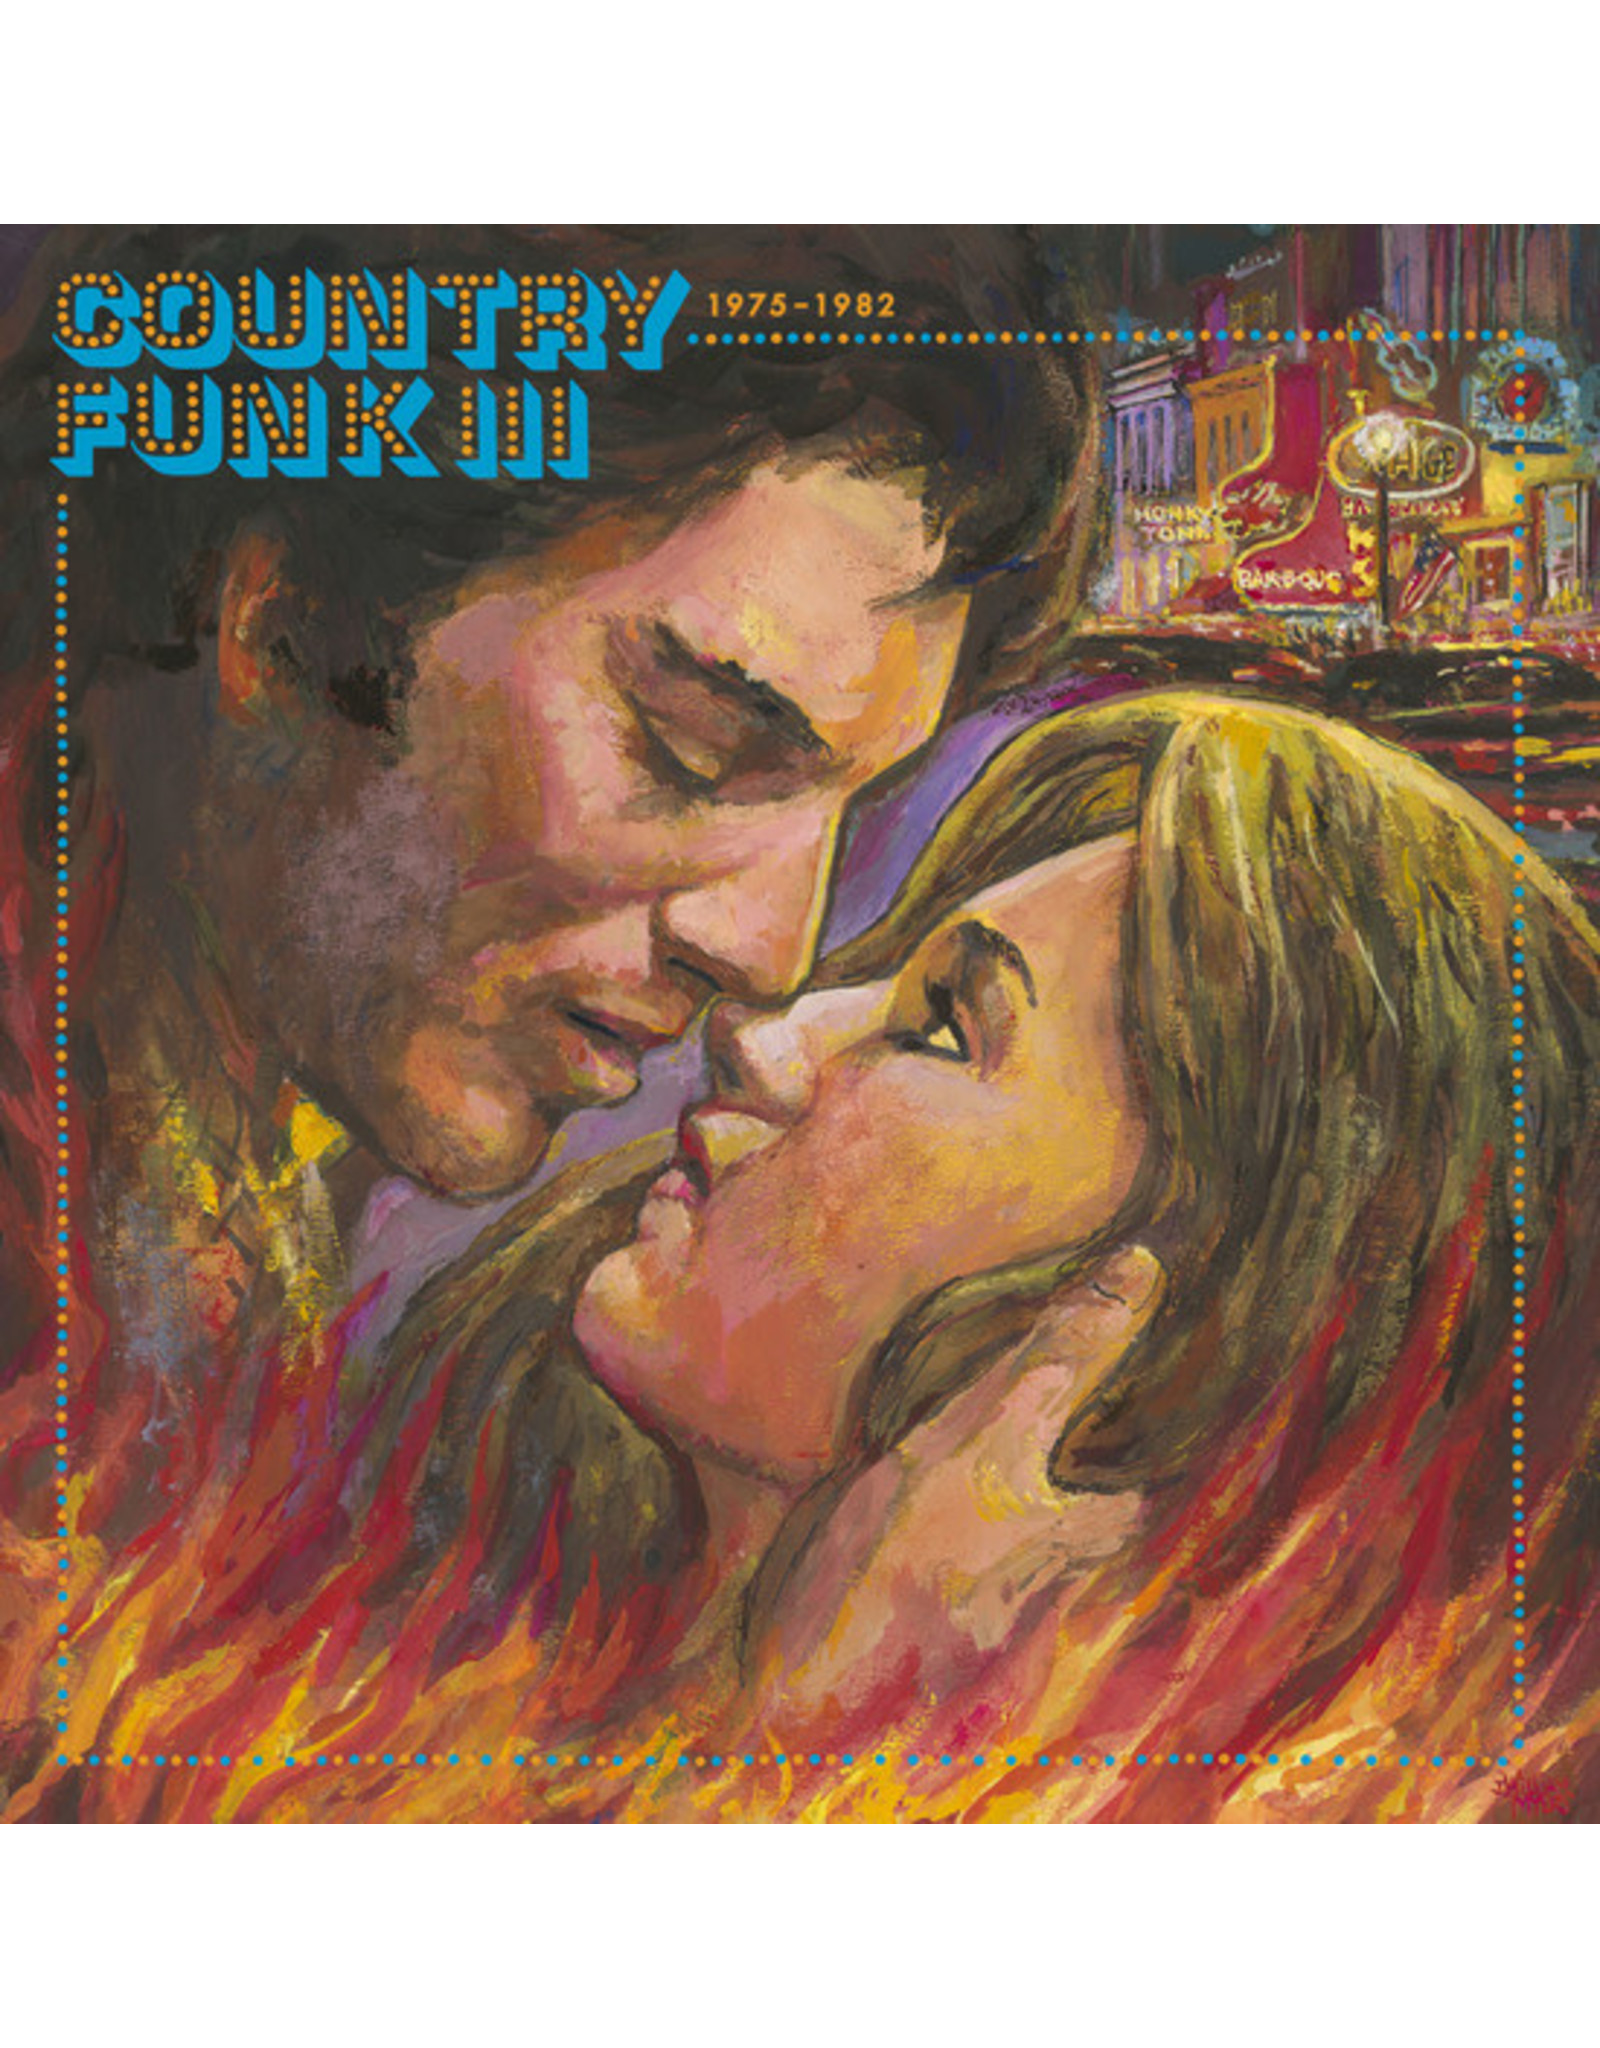 Light in the Attic Various: Country Funk Vol. 3 1975-1982 LP